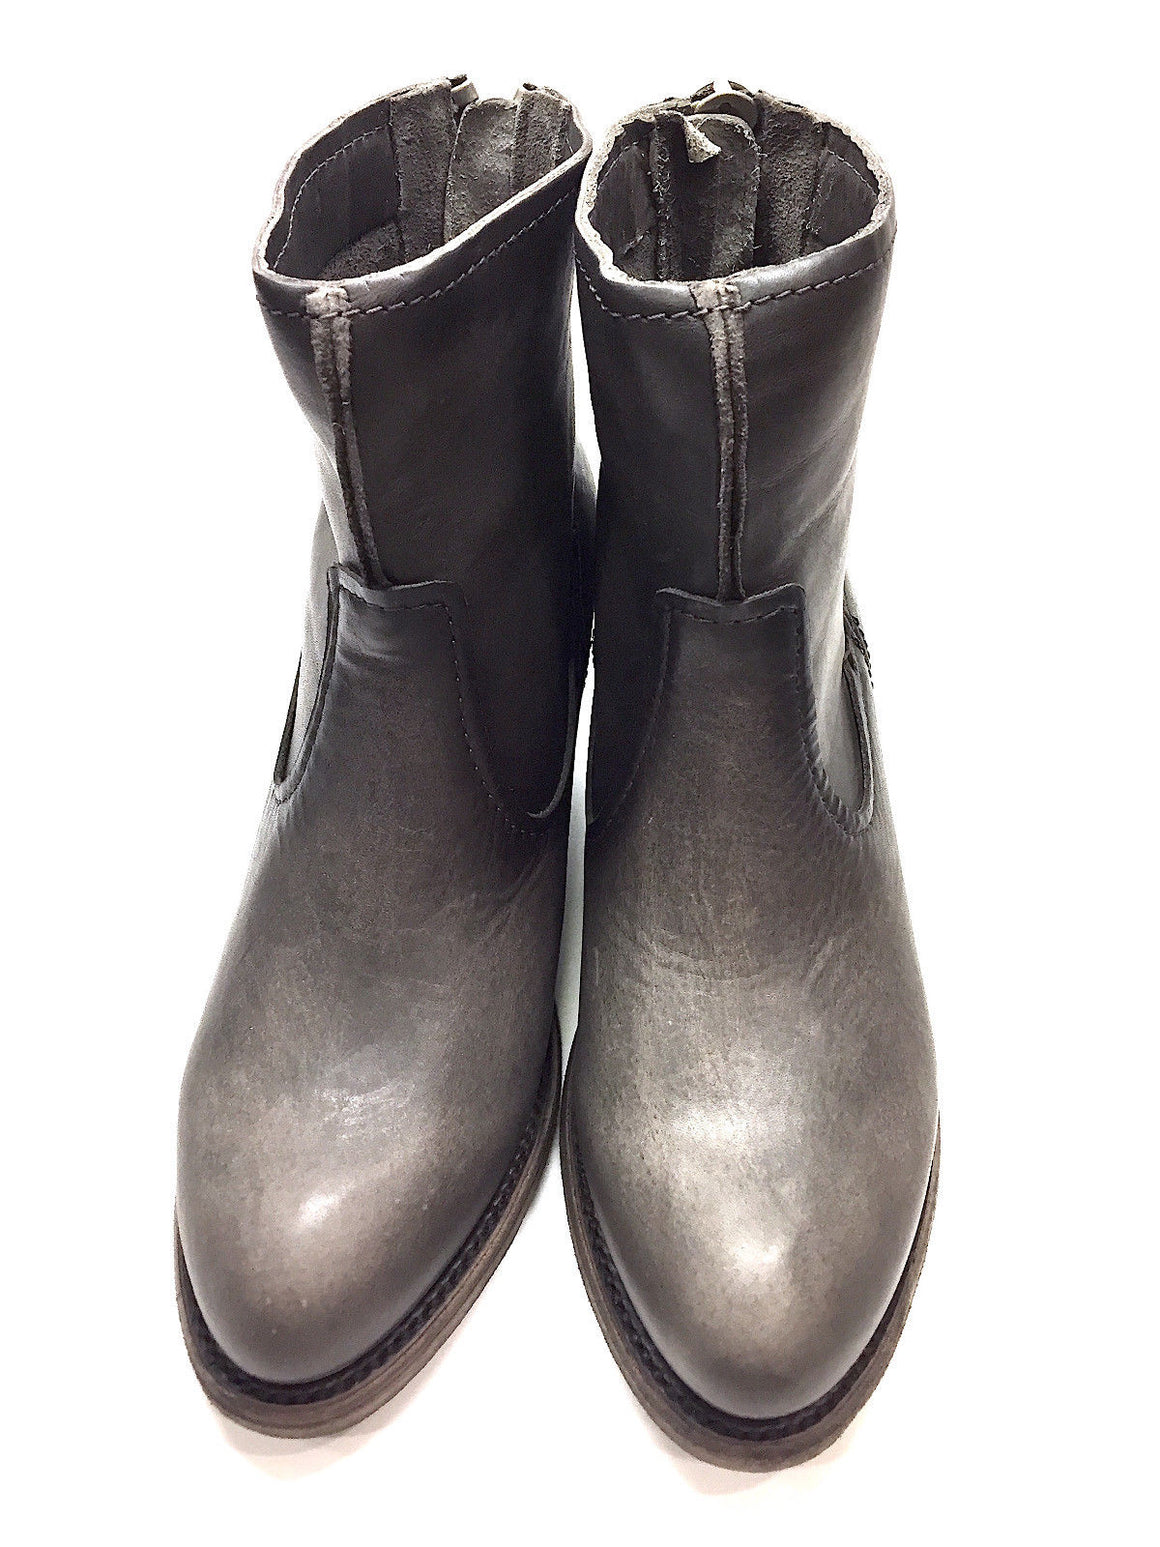 "bisbiz.com FRYE NEW Smoke Leather ""LESLIE"" Artisan Western-Style Ankle Boots Booties - Bis Luxury Resale"